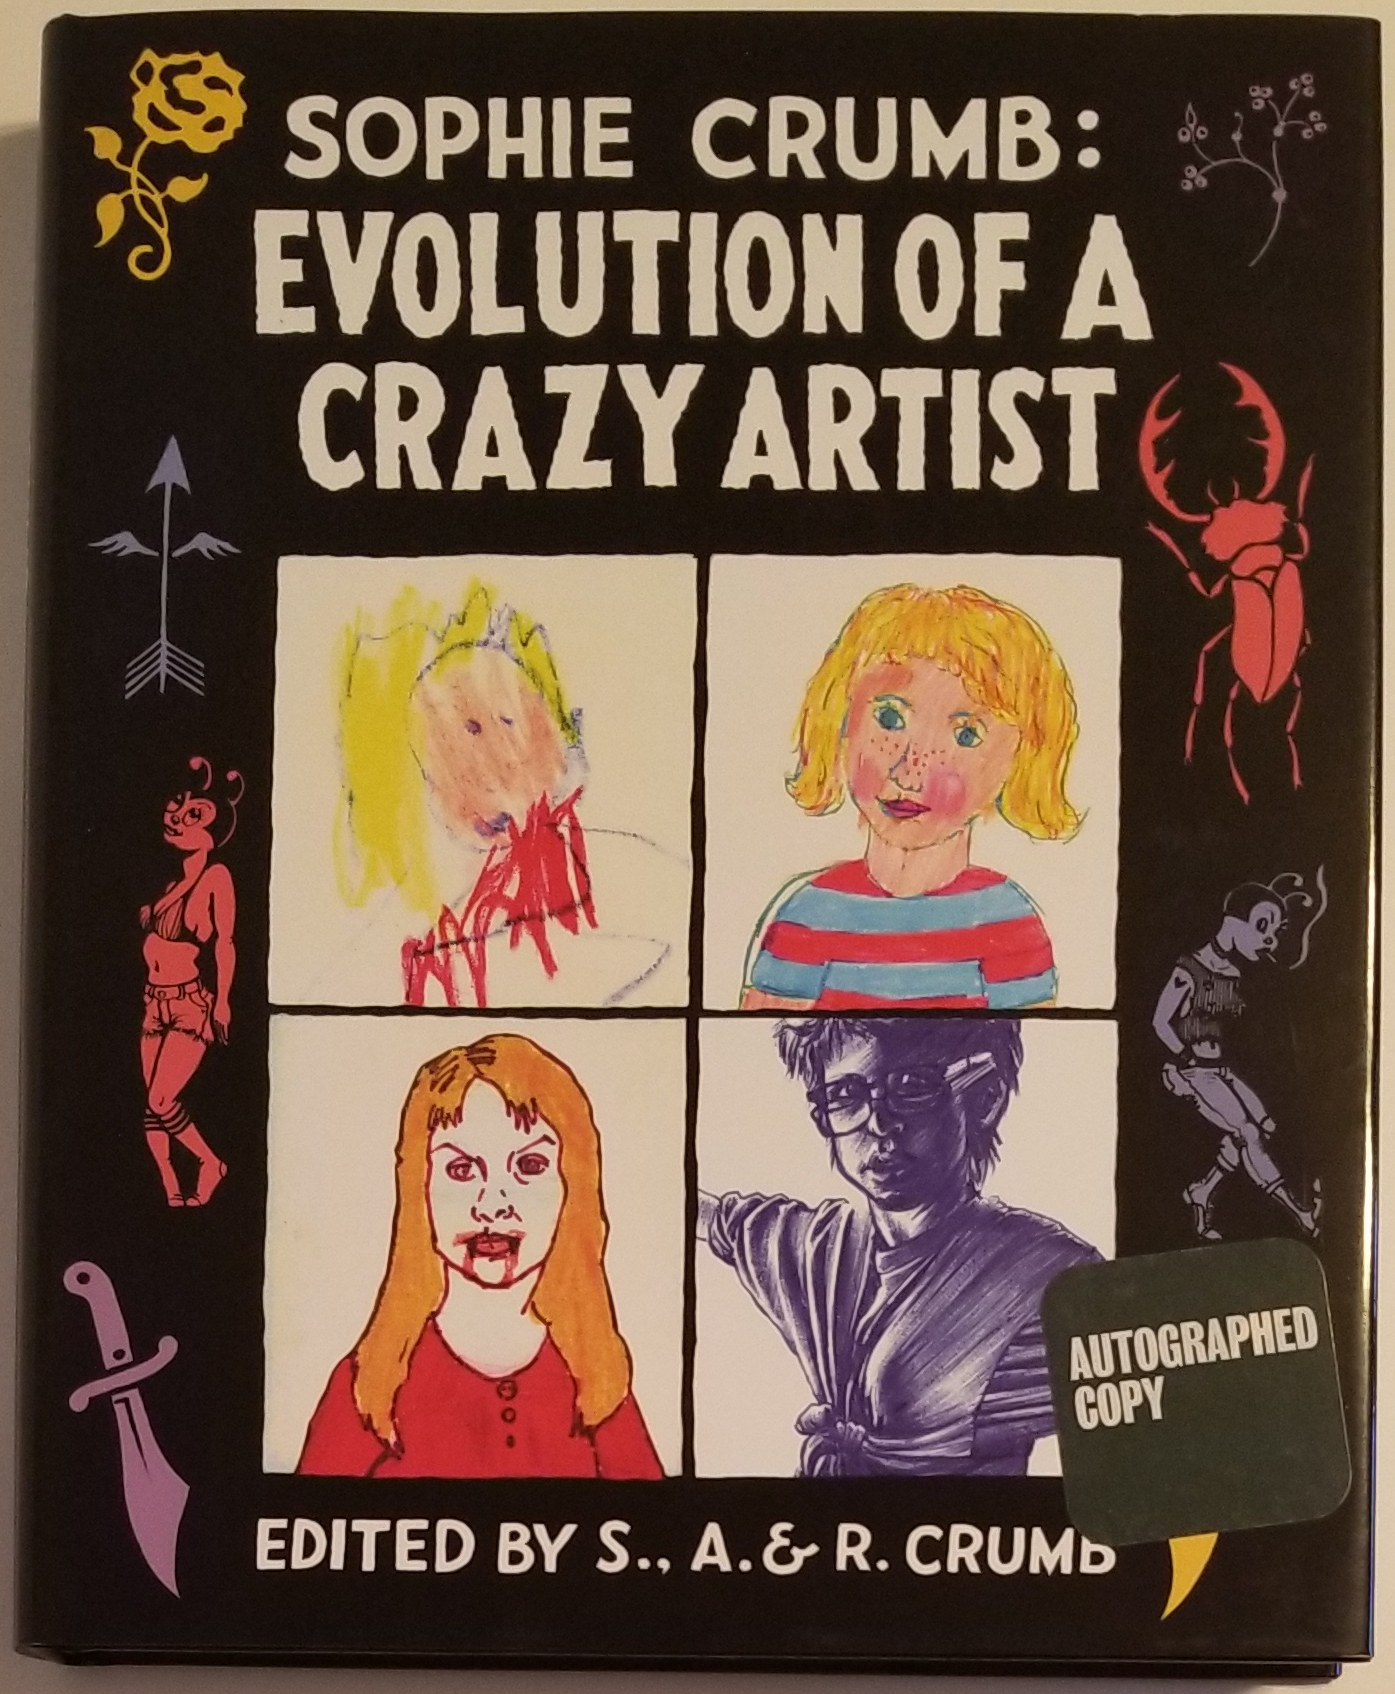 EVOLUTION OF A CRAZY ARTIST. Edited by S., A. & R. Crumb. Sophie Crumb.